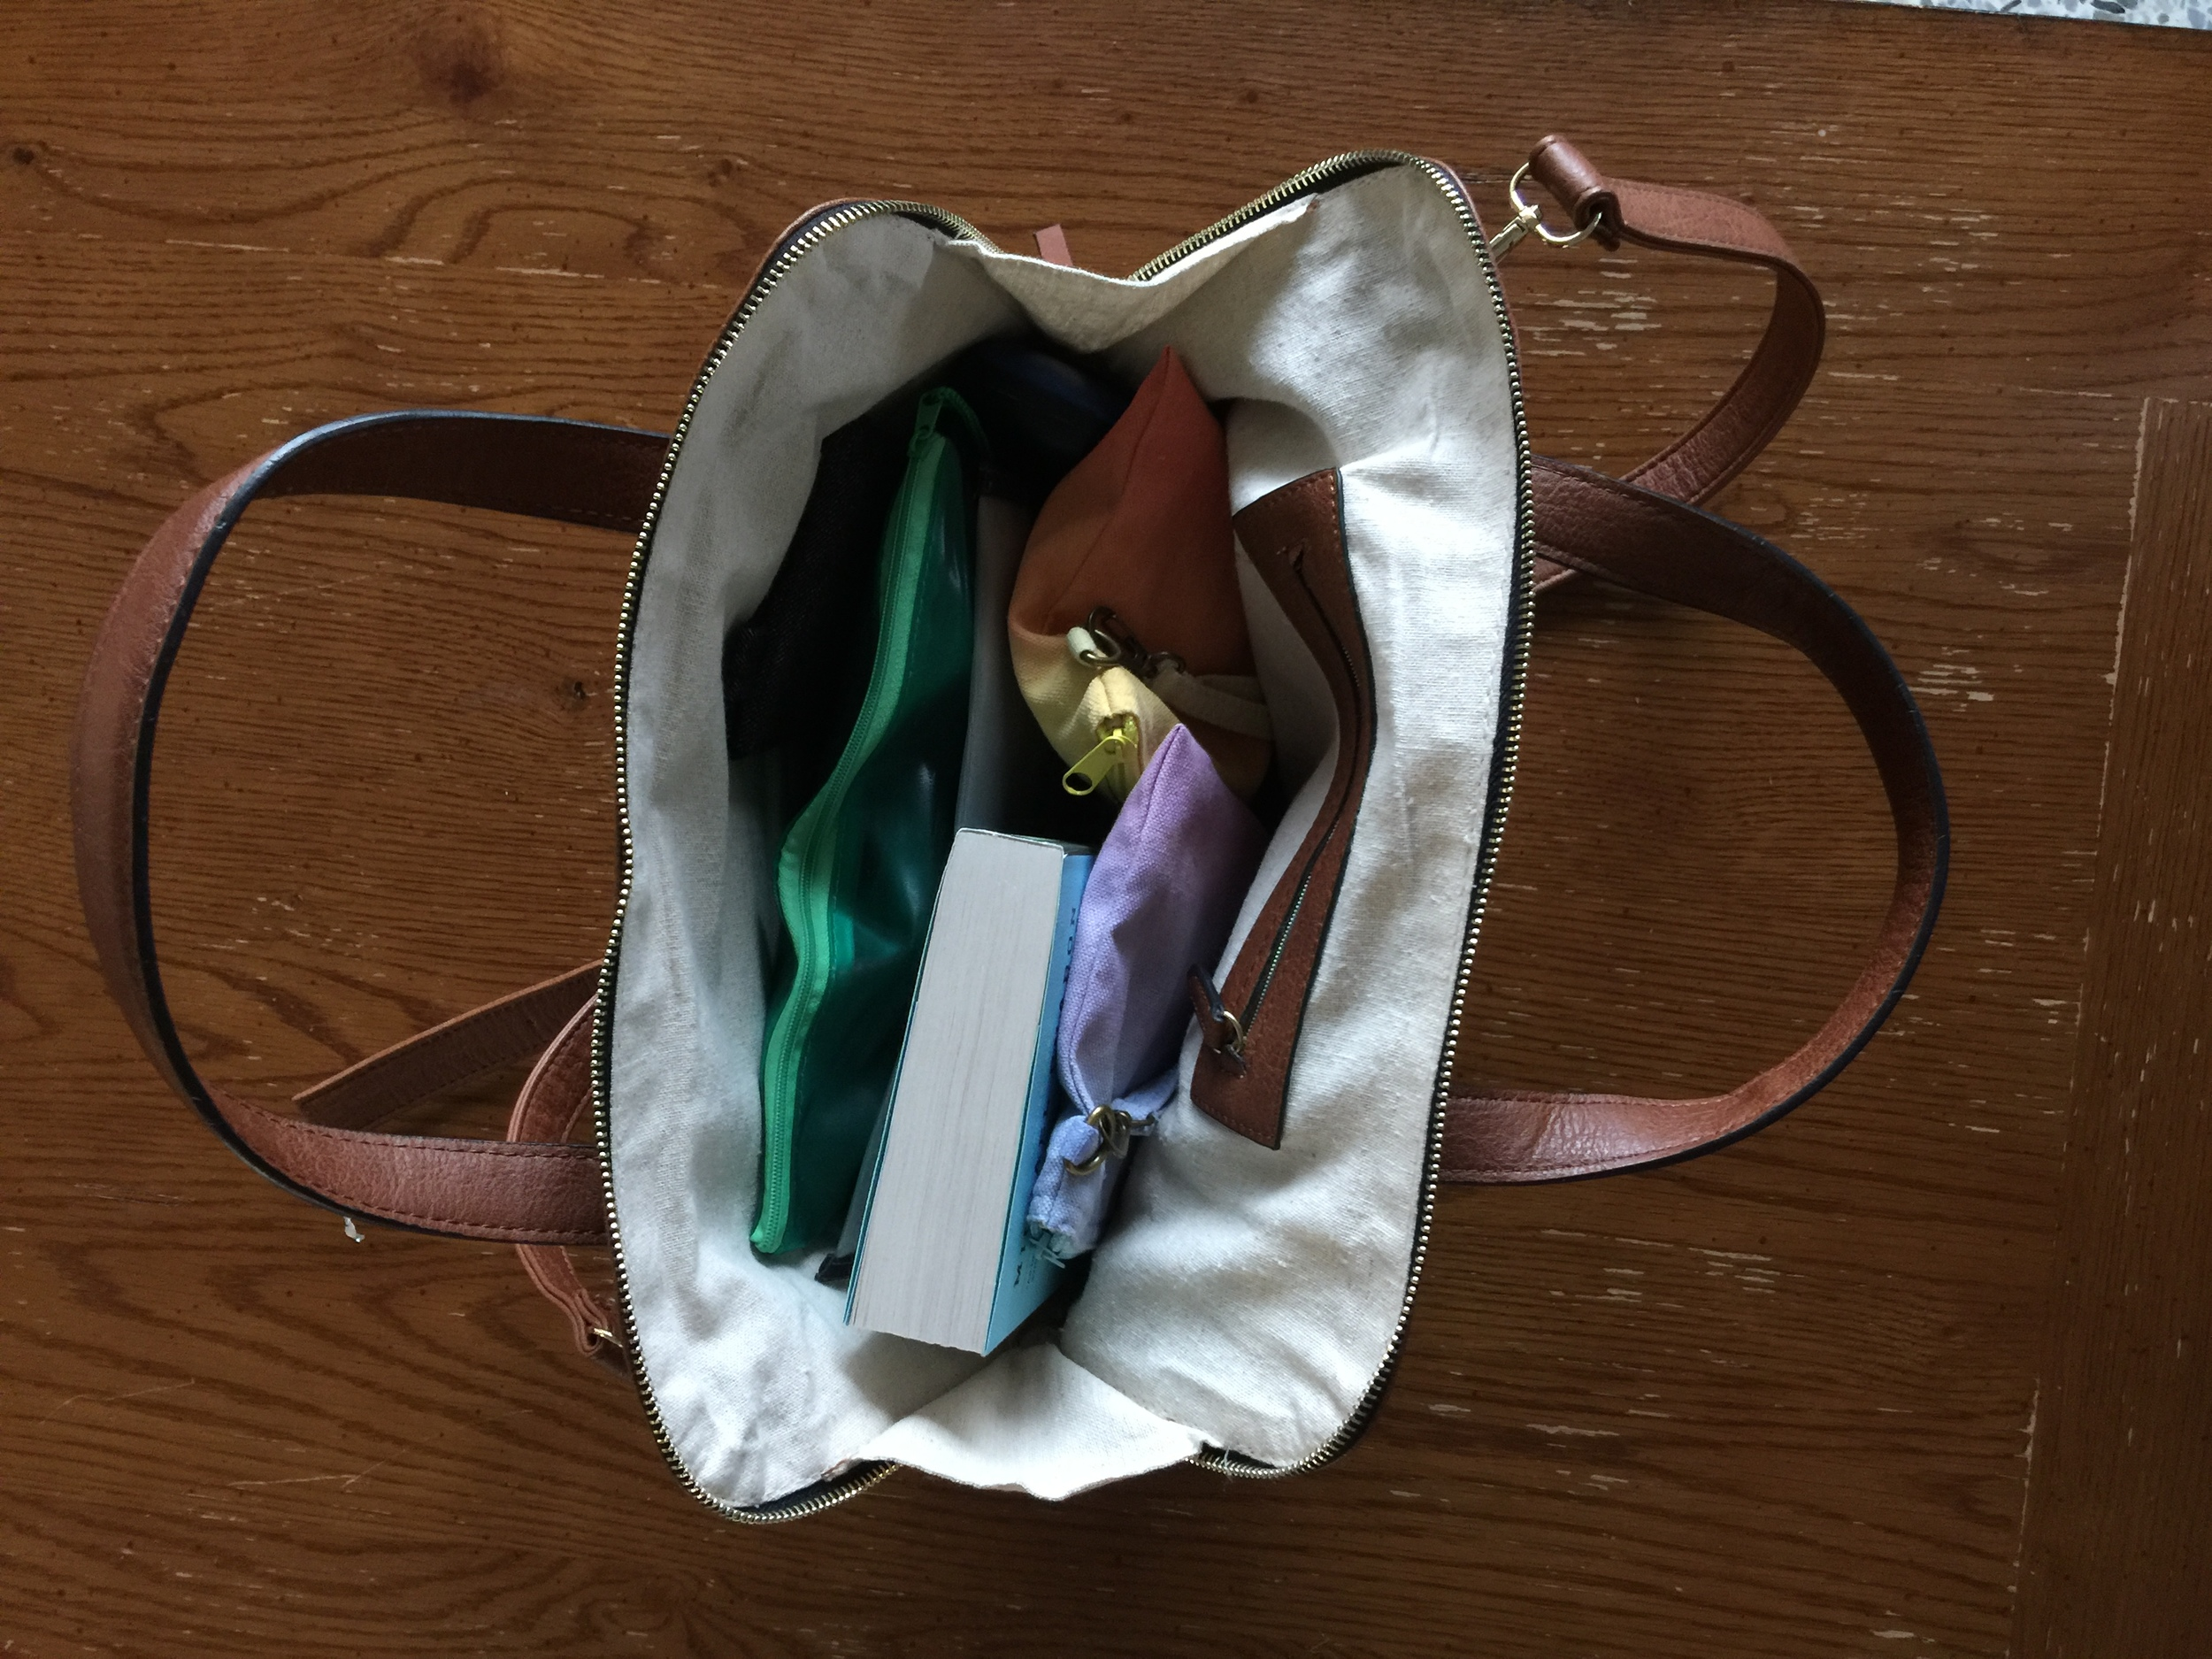 The bag opening is really wide and has bright linen lining, which makes everything easy to find.